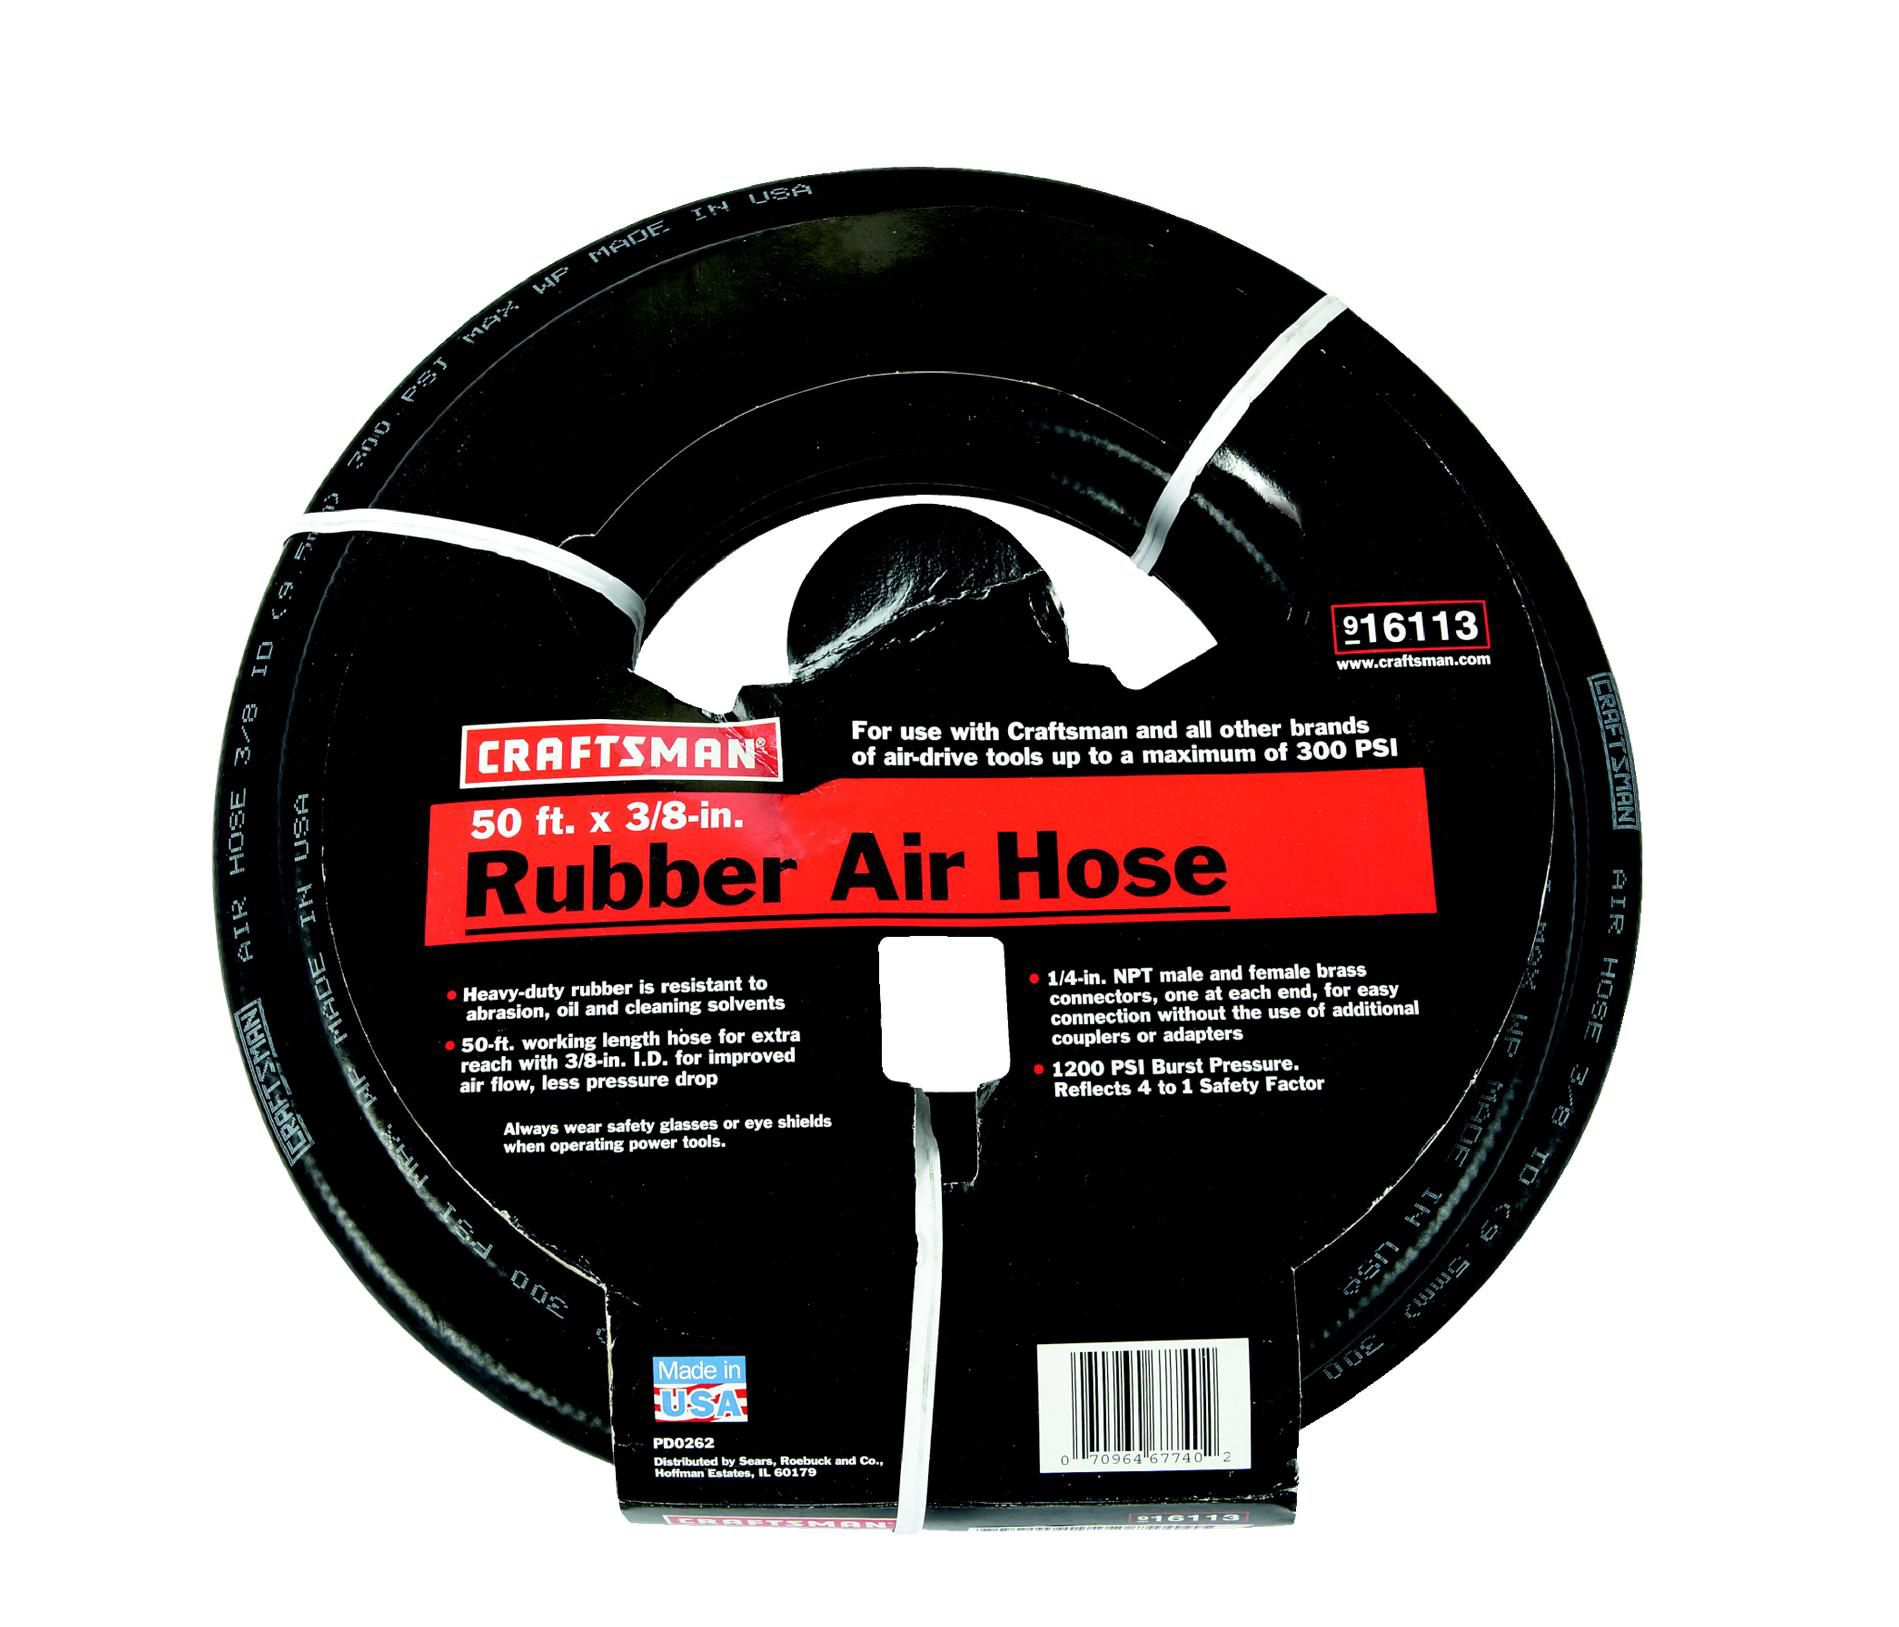 Craftsman 3/8 in. x 50 ft. Air Hose, Heavy-Duty